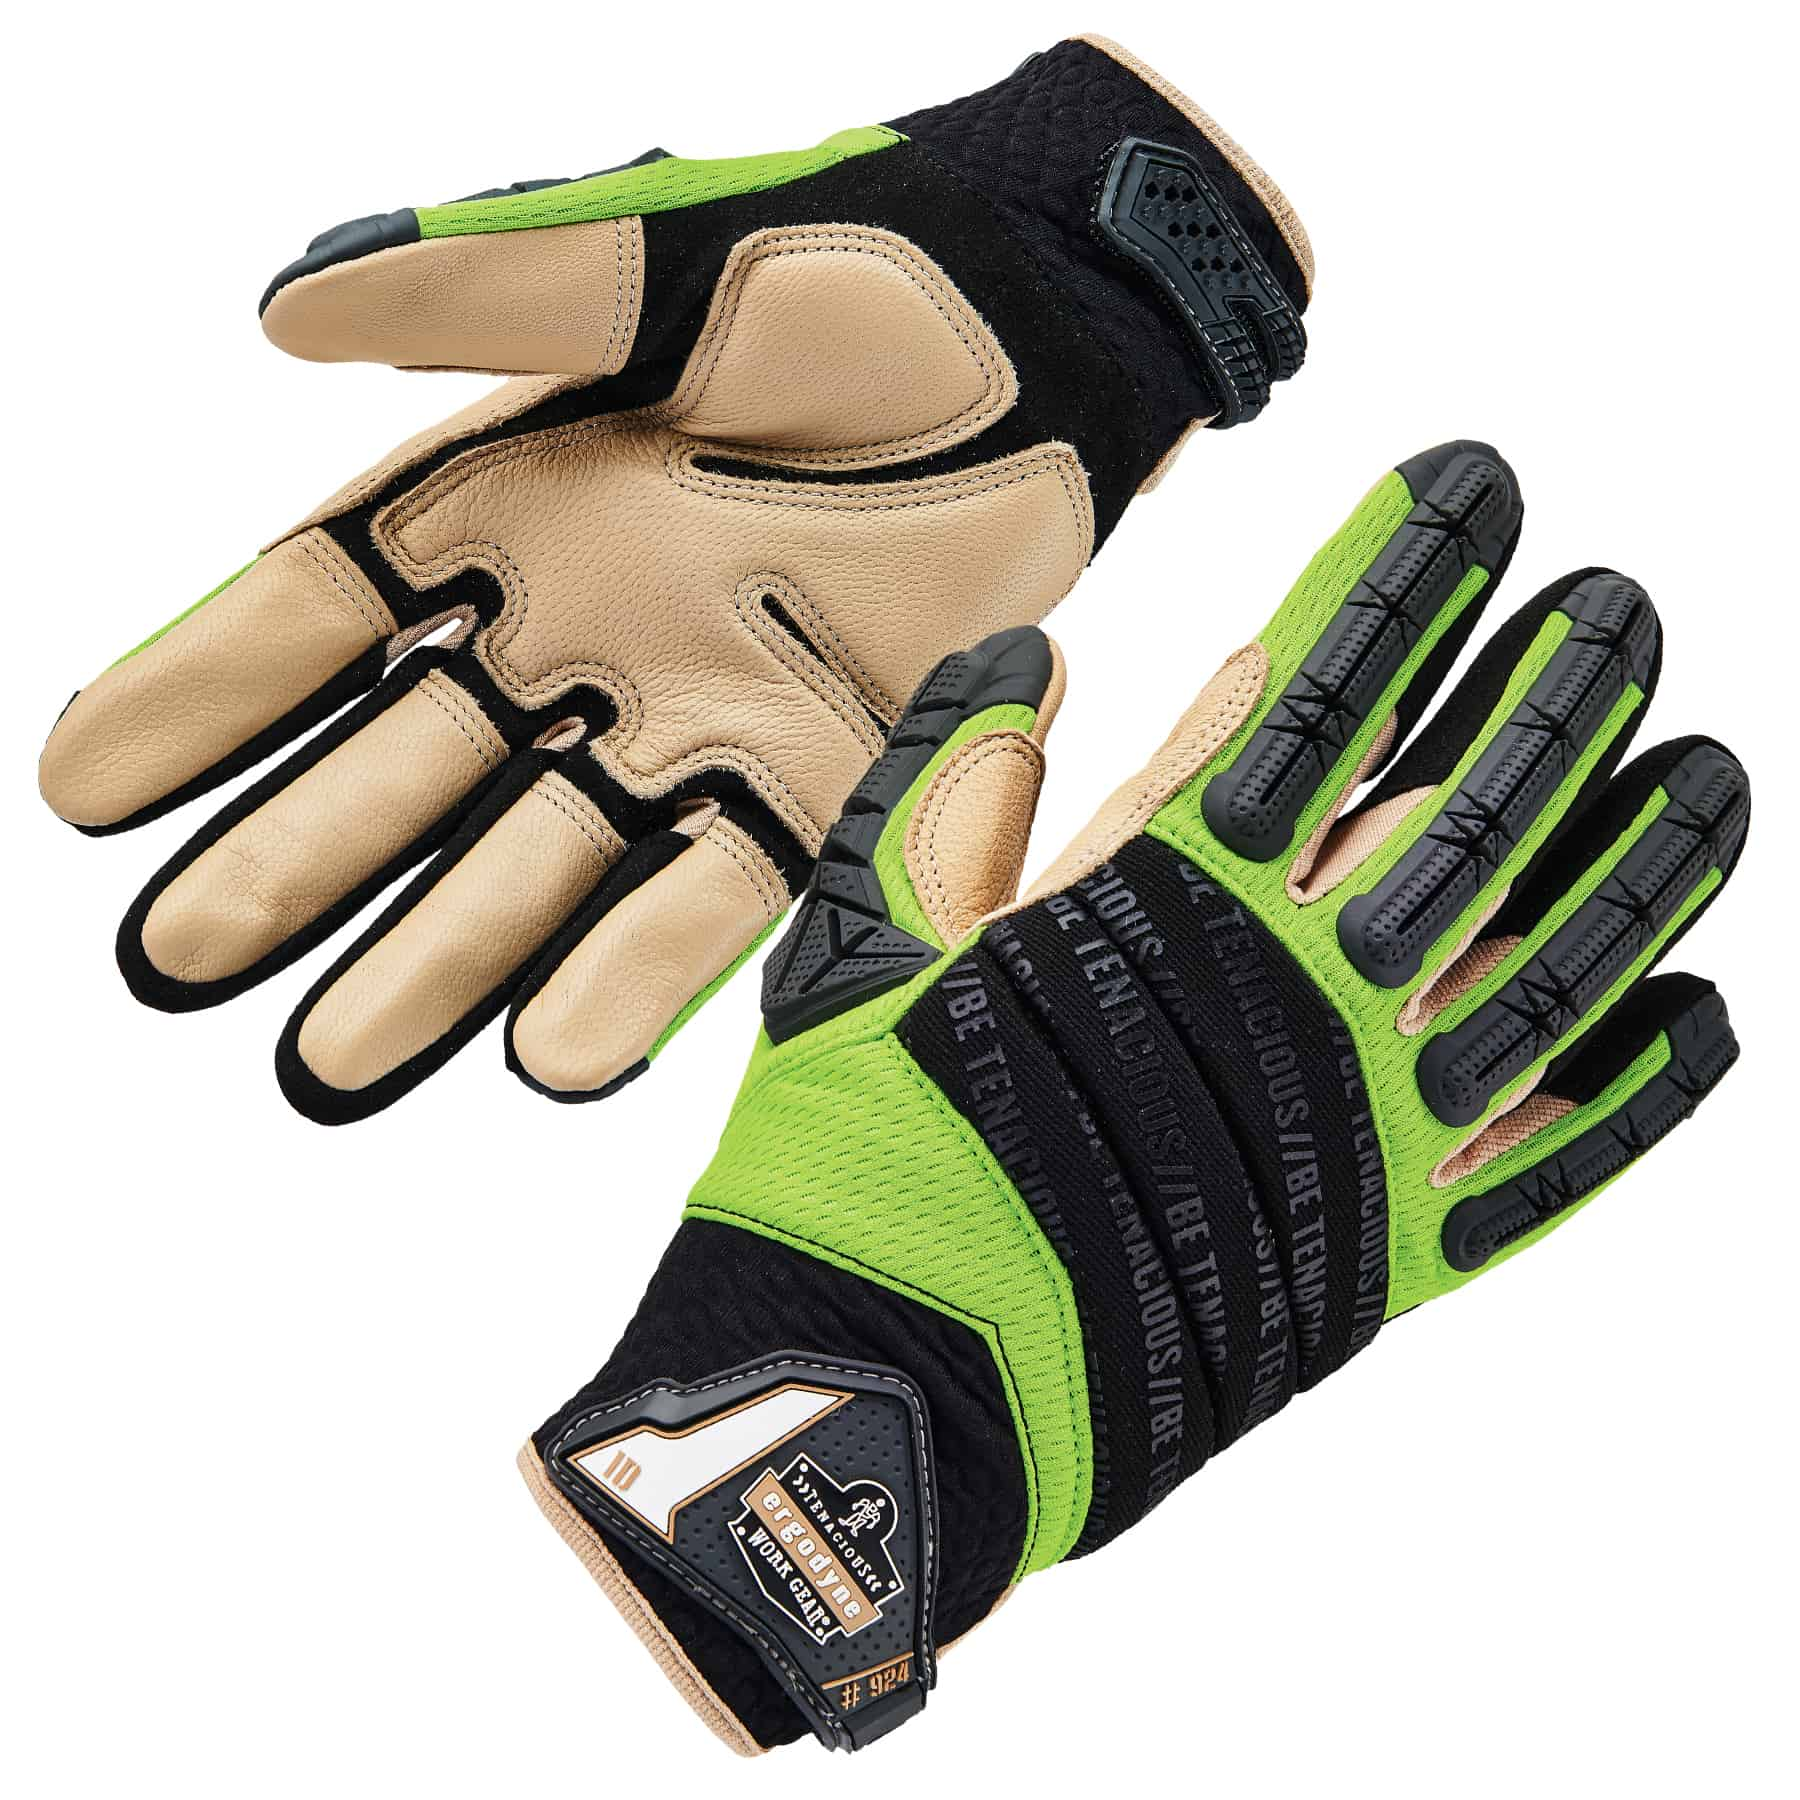 Ergodyne 924LTR ProFlex Leather-Reinforced Hybrid DIR Gloves